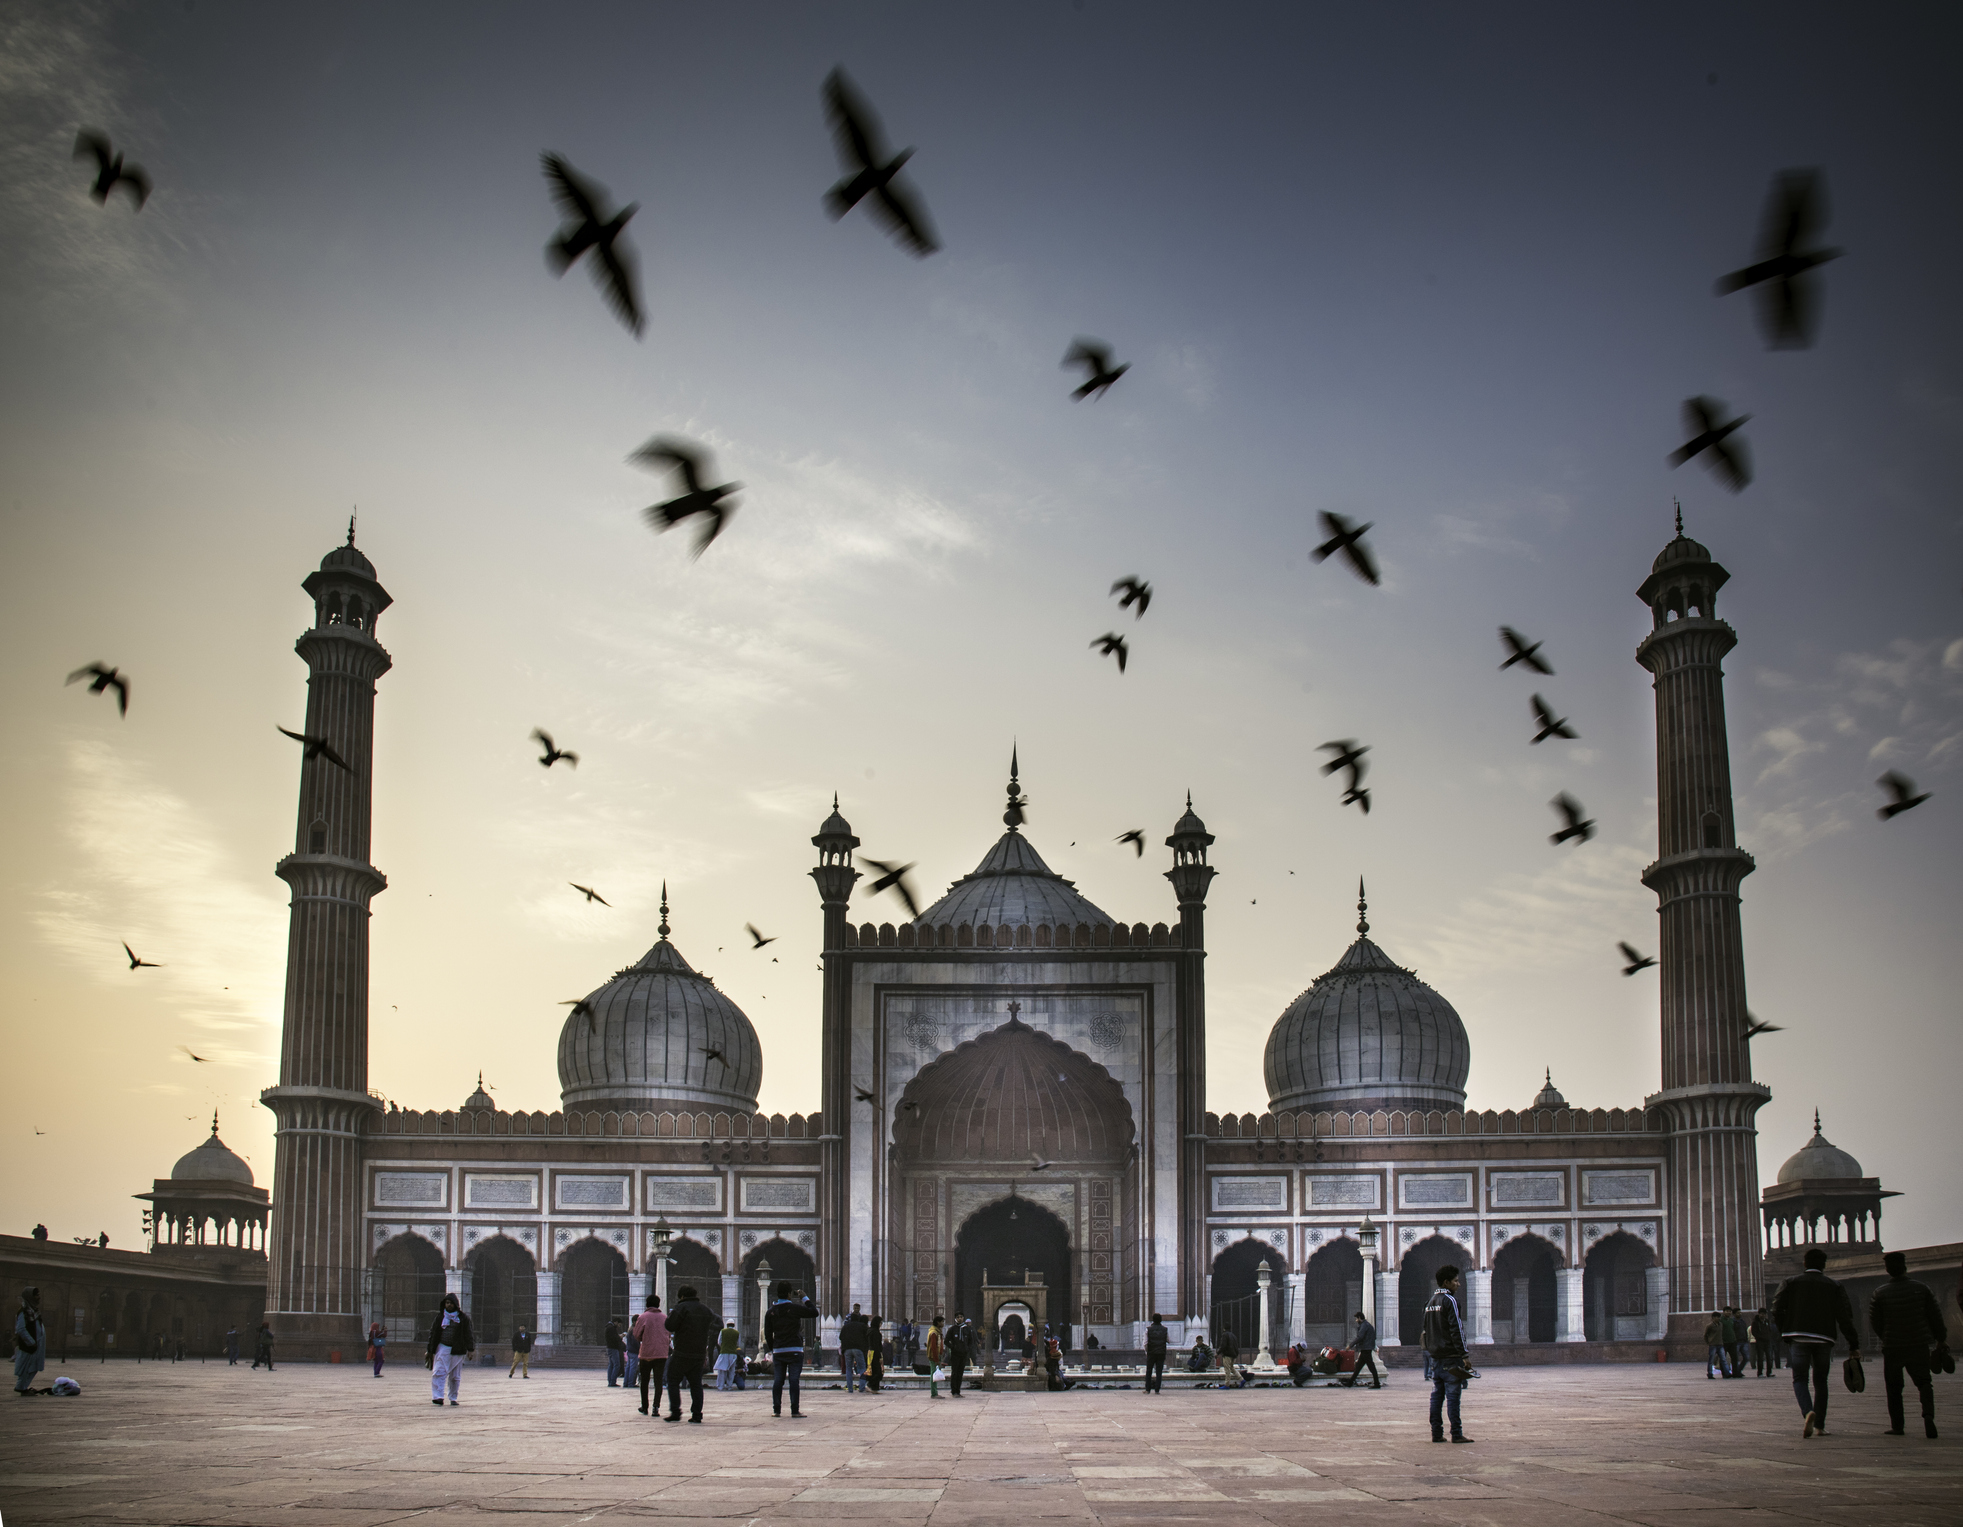 The Pew Research Center highlights the discrimination faced by Indian Muslims